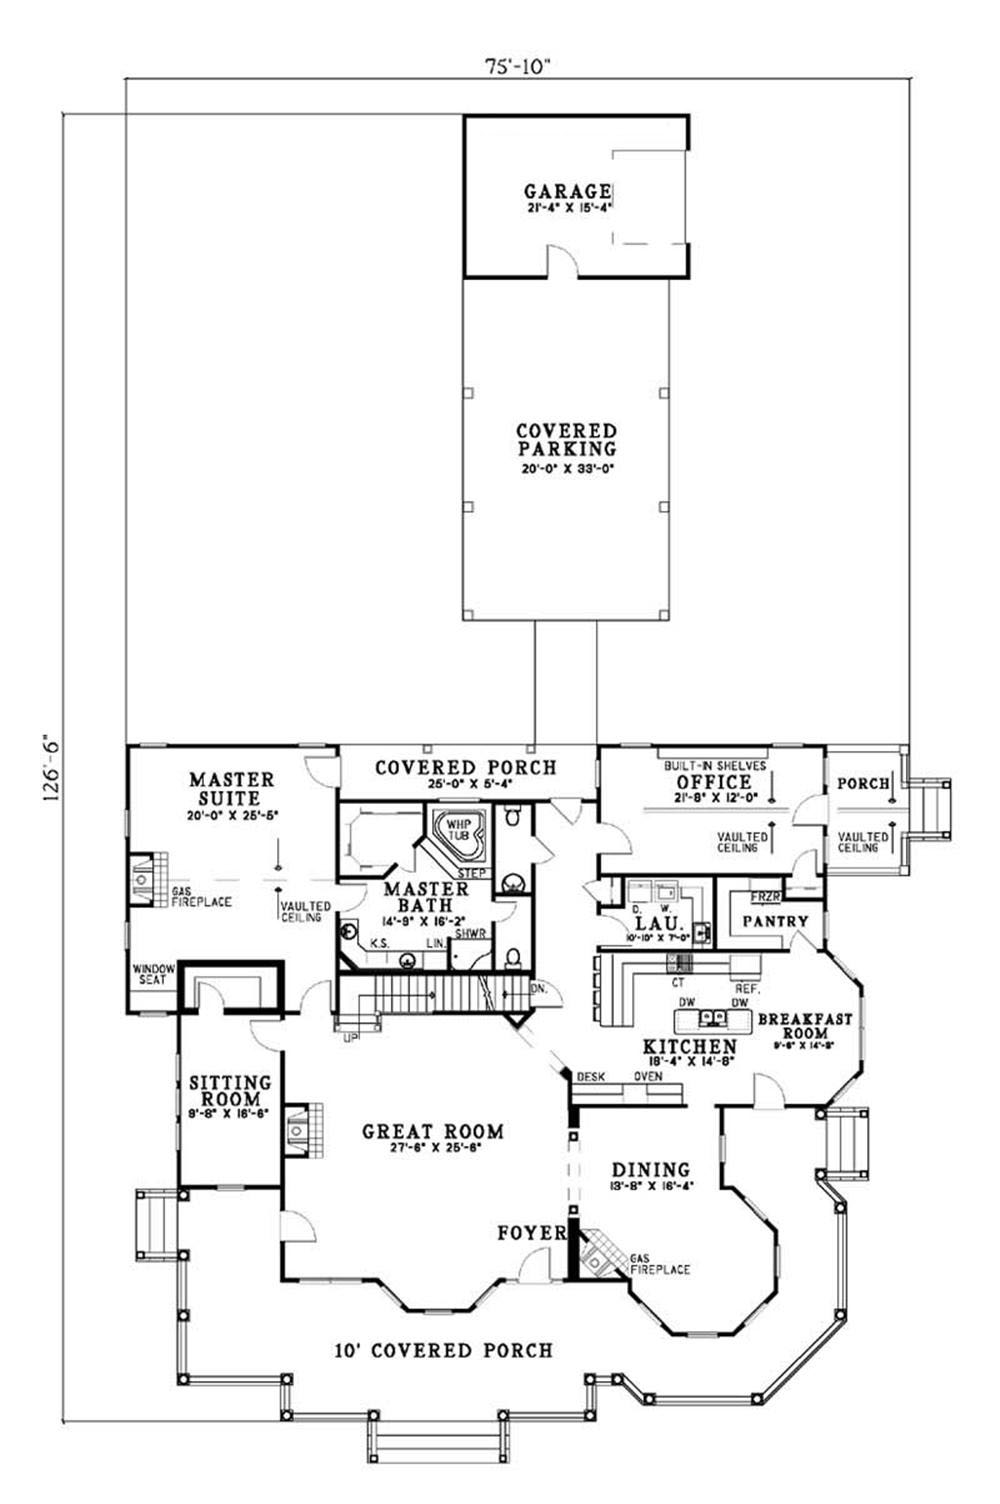 Luxury Houseplans Home Design Main Street 3816